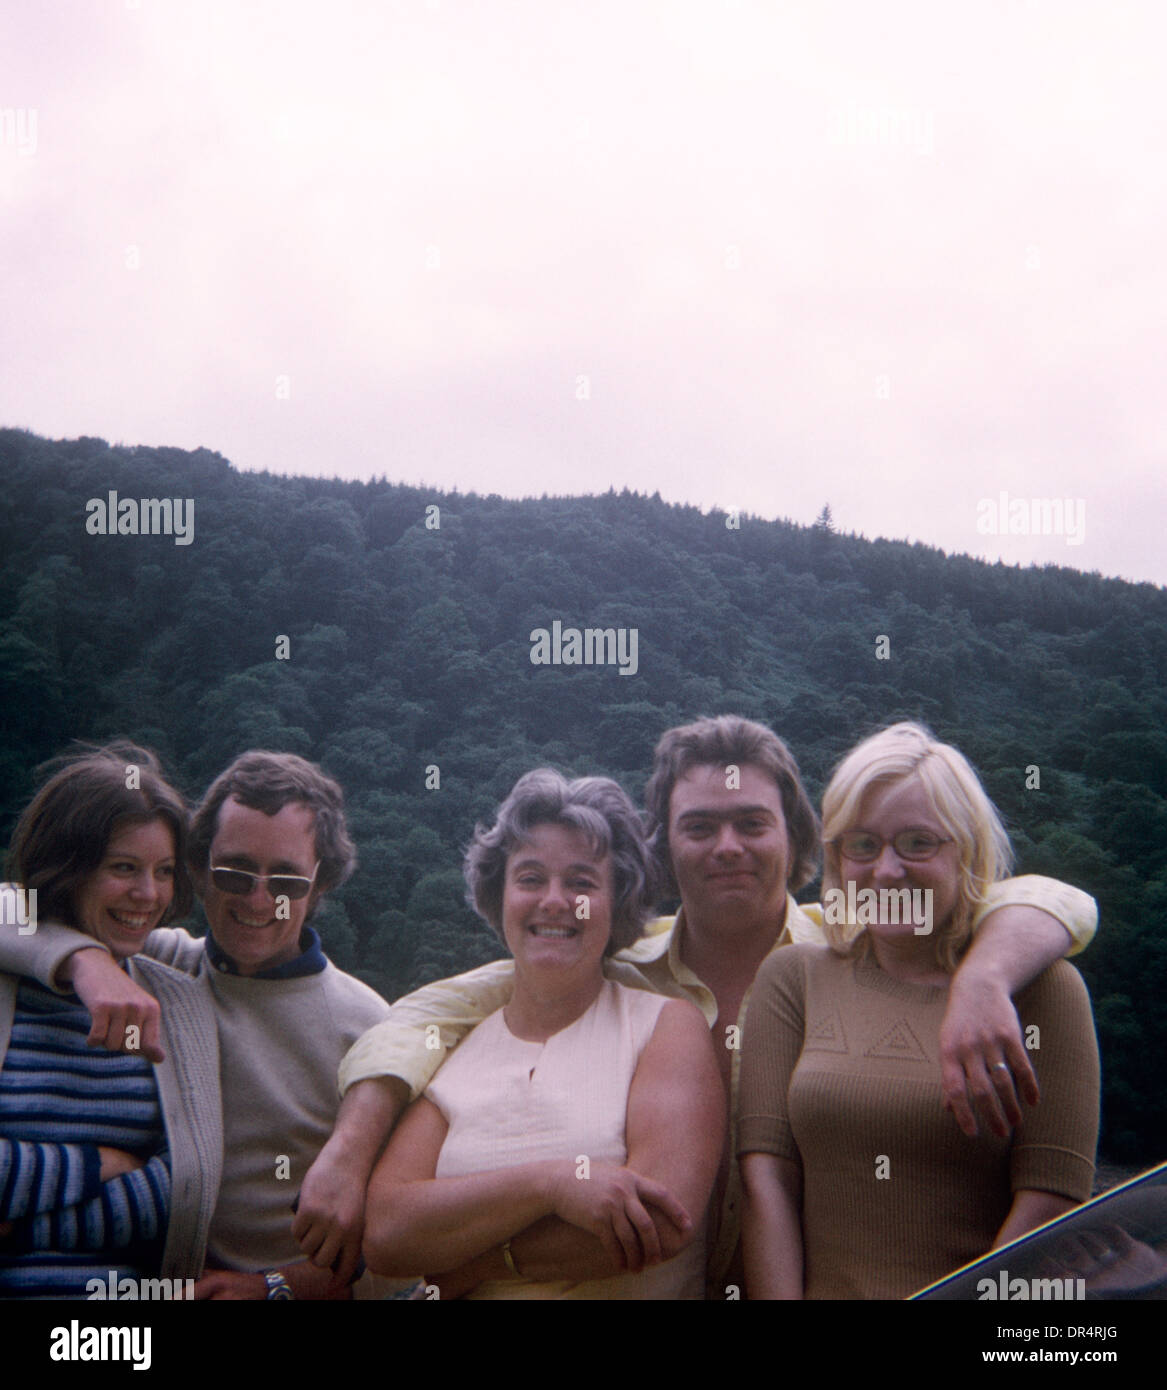 Friends and family portrait with Welsh hills in the background in the 1970s. - Stock Image